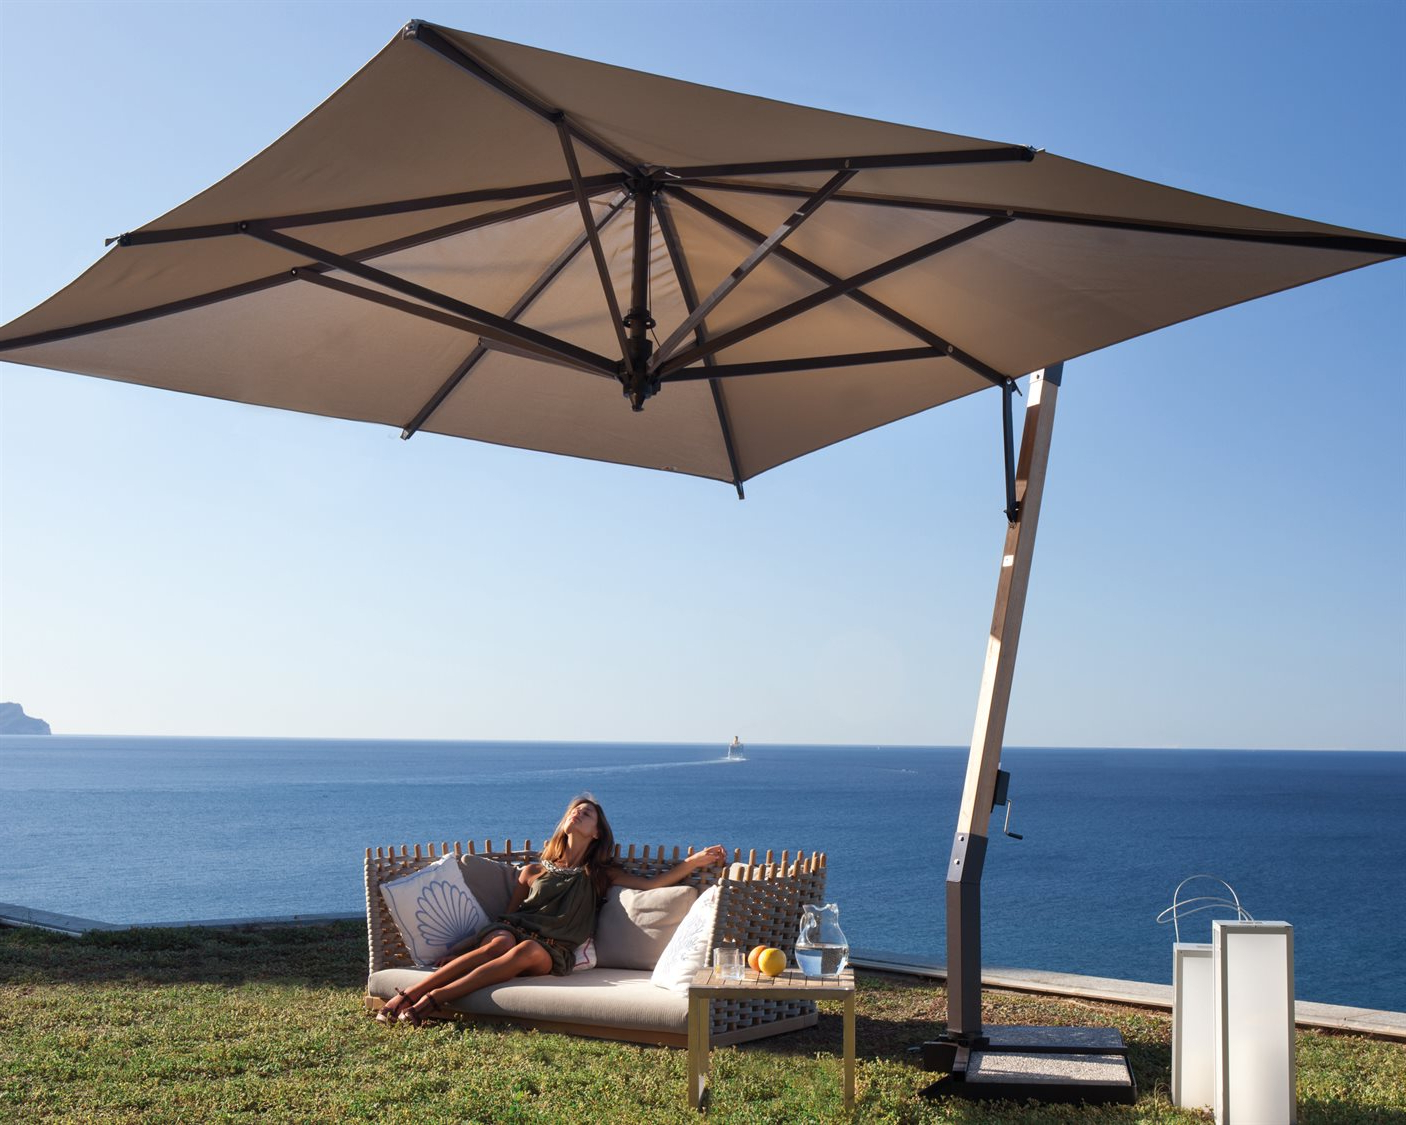 Krystal Square Cantilever Sunbrella Umbrellas Intended For Most Up To Date Fim P Series Aluminum 11.5 Square Cantilever Umbrella (Gallery 20 of 20)